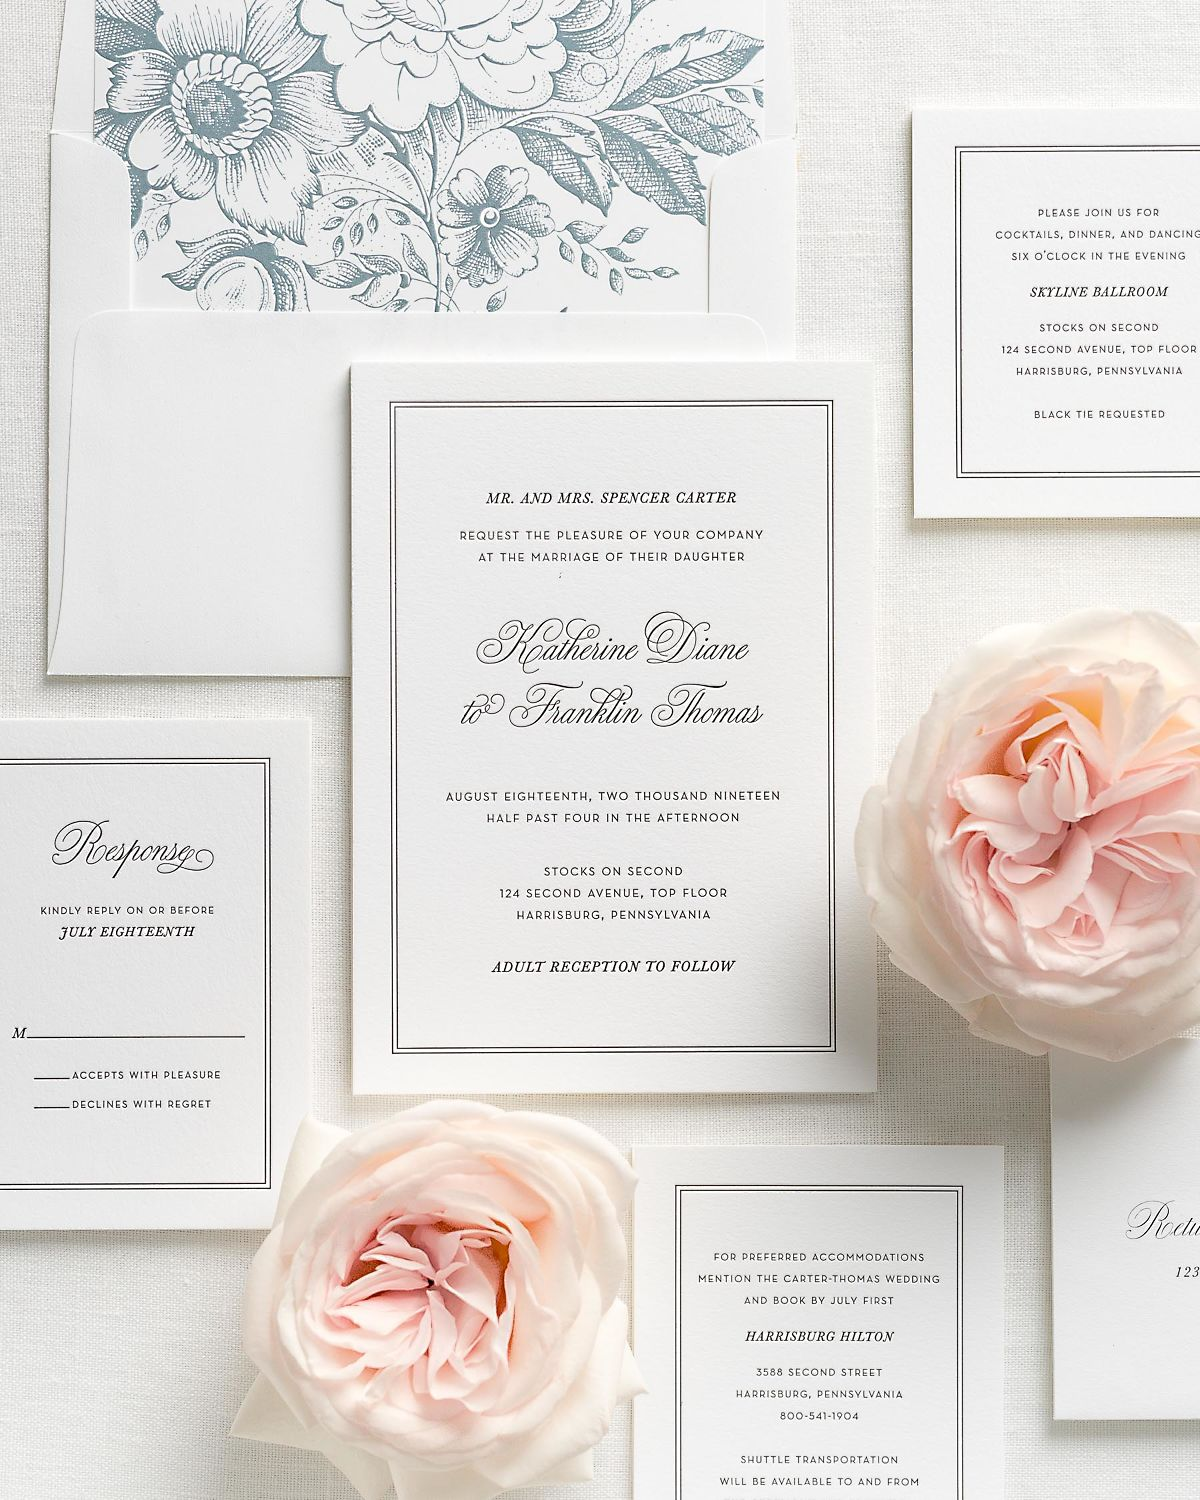 Letterpress Wedding Invitations with Mineral Garden Rose Envelope Liner and Matching Accessories